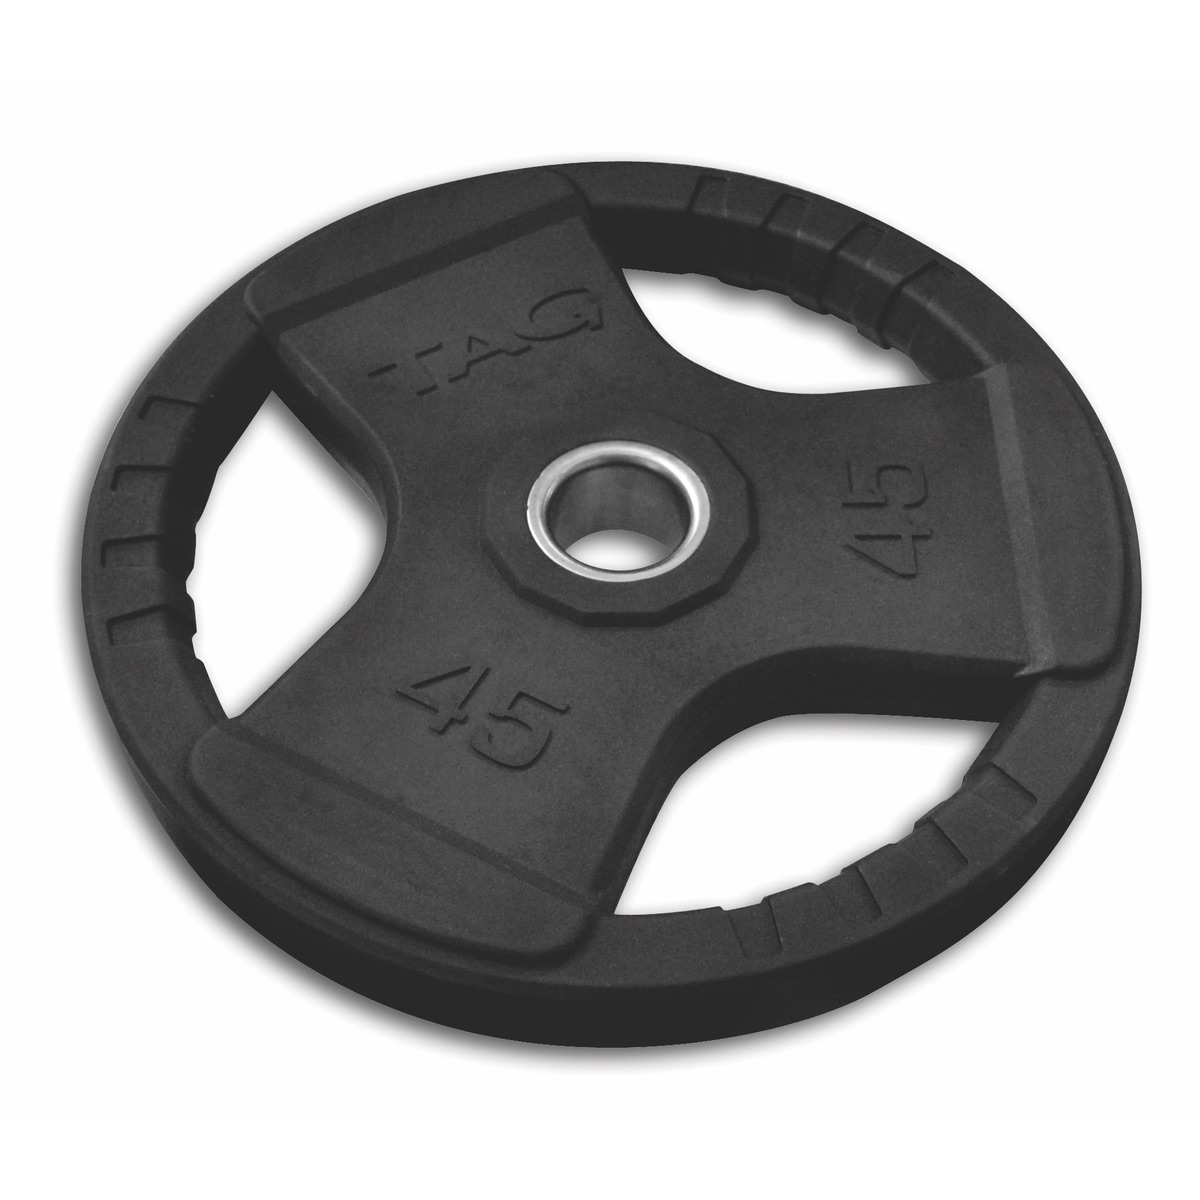 Tag Ultrathane Olympic Plate Tag Fitness